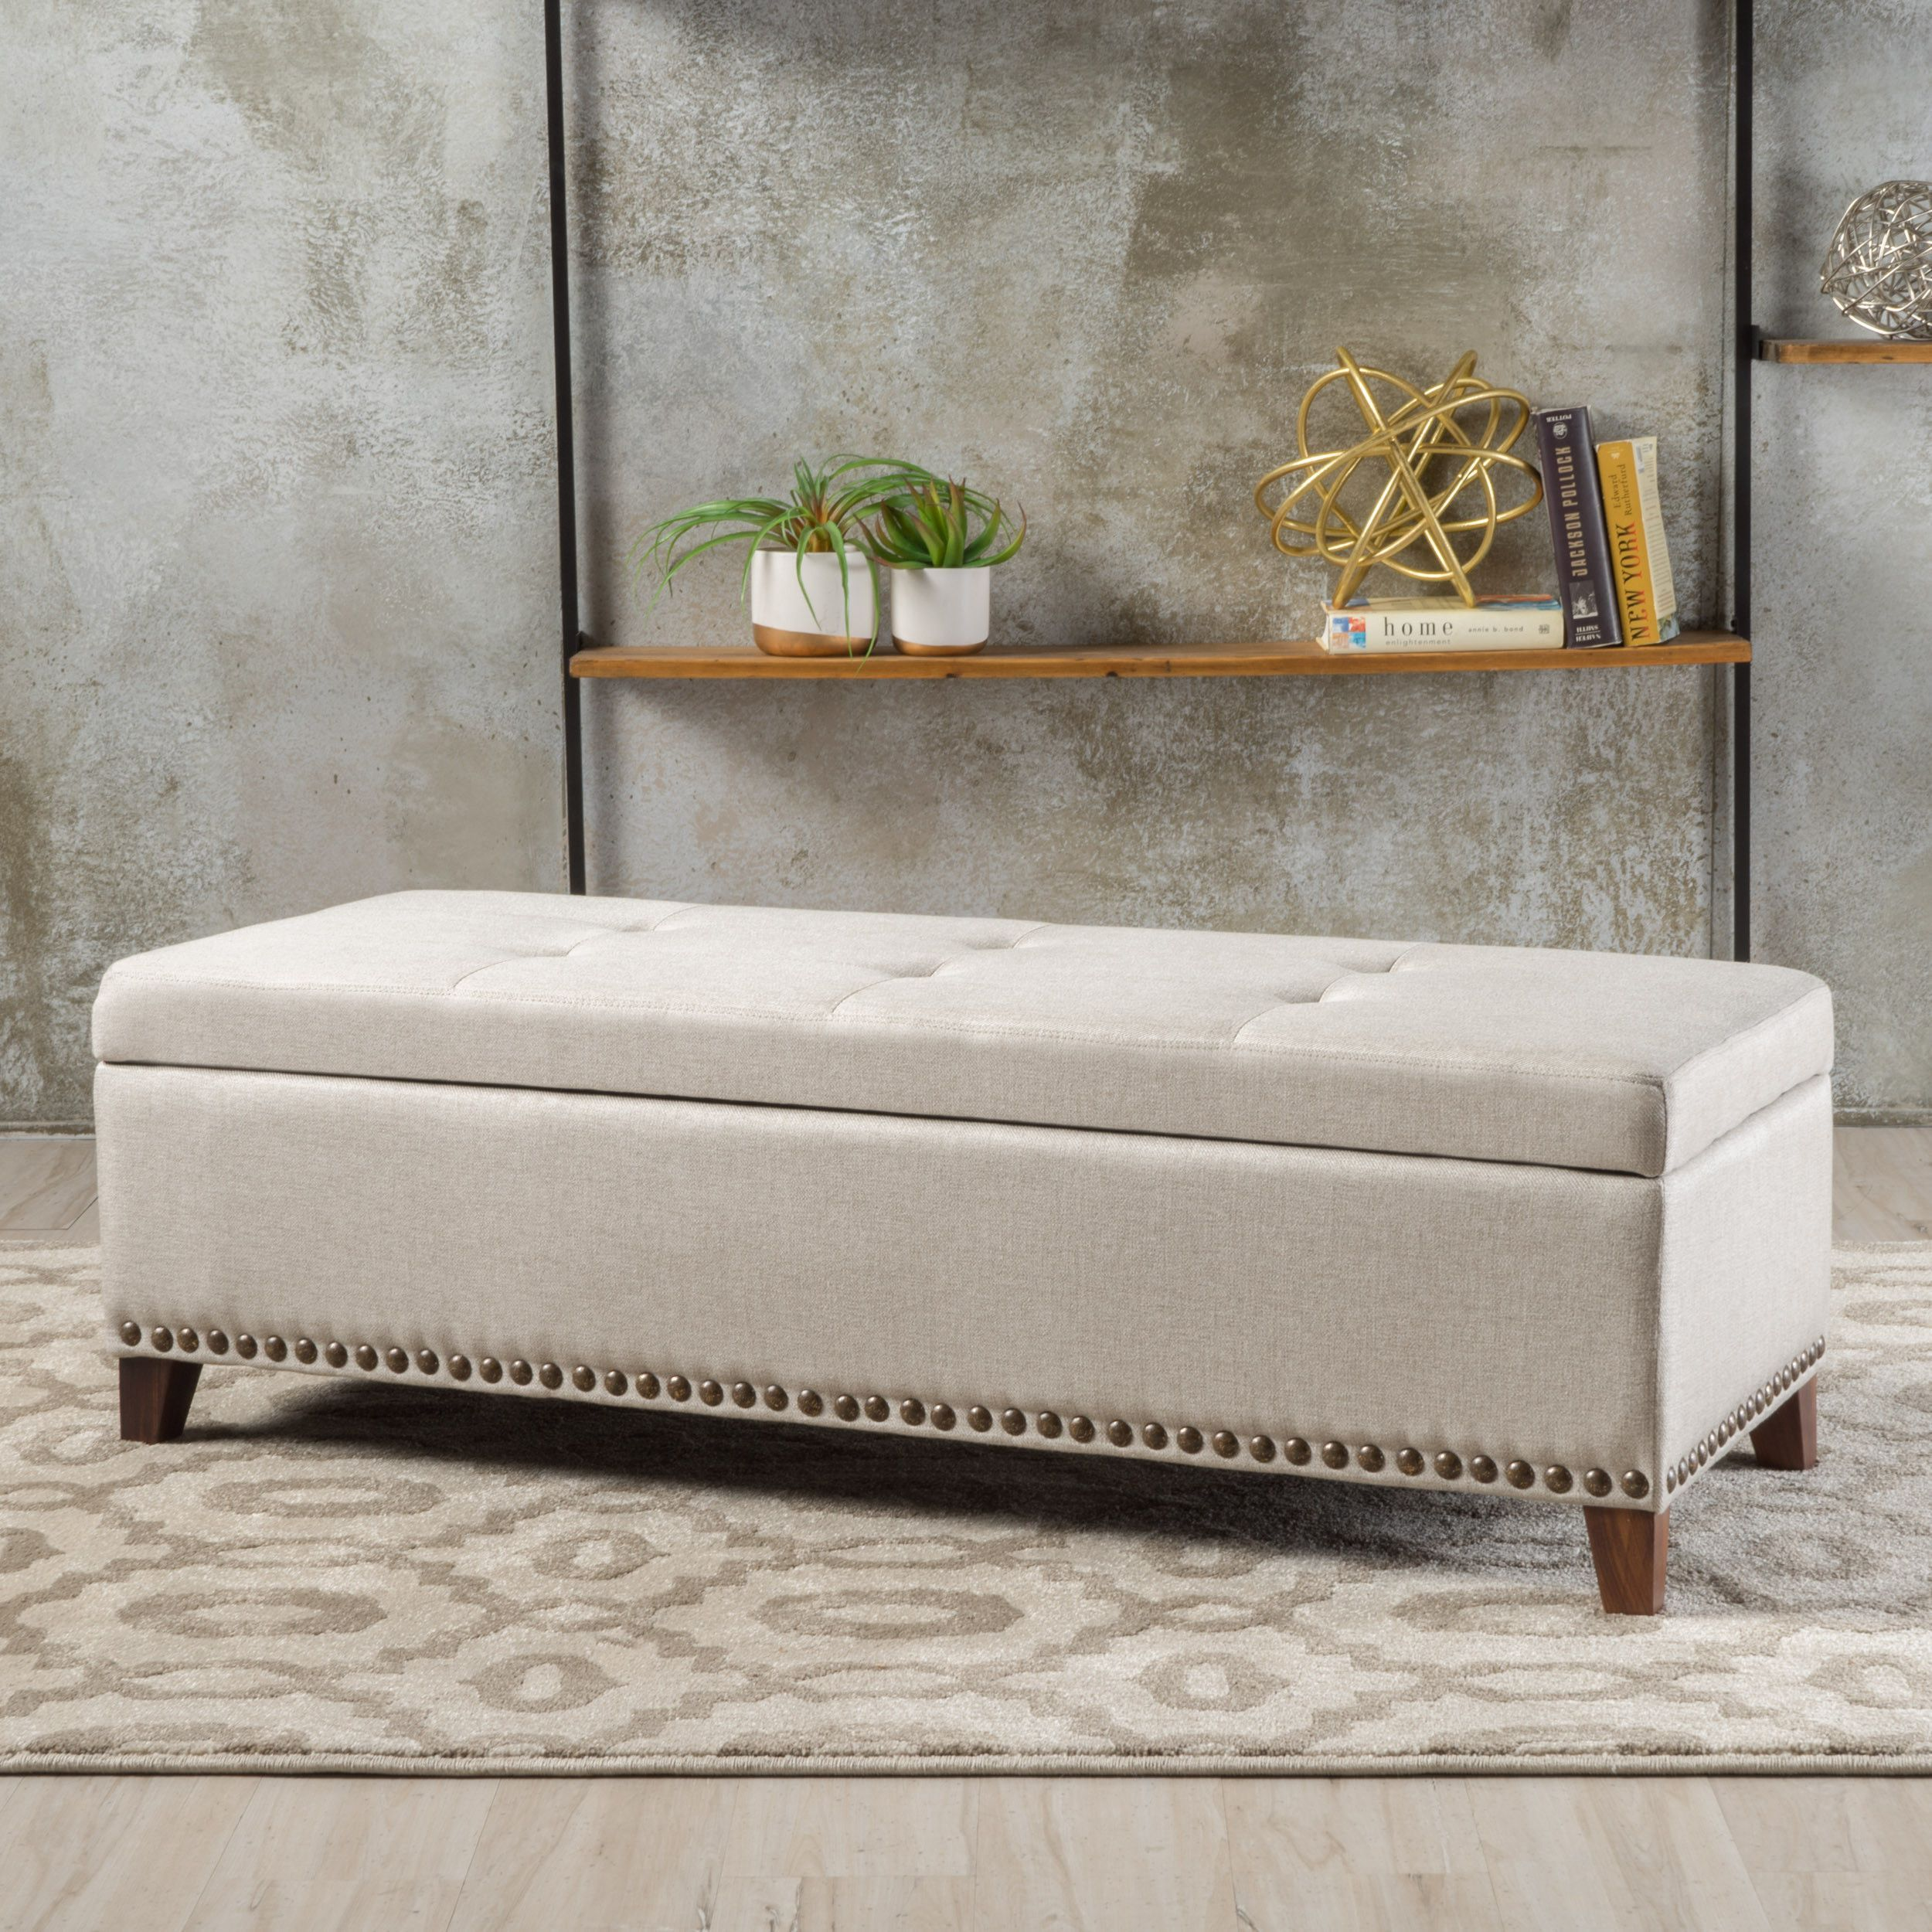 Gisele Tufted Cover Beige Fabric Storage Ottoman Products Fabric